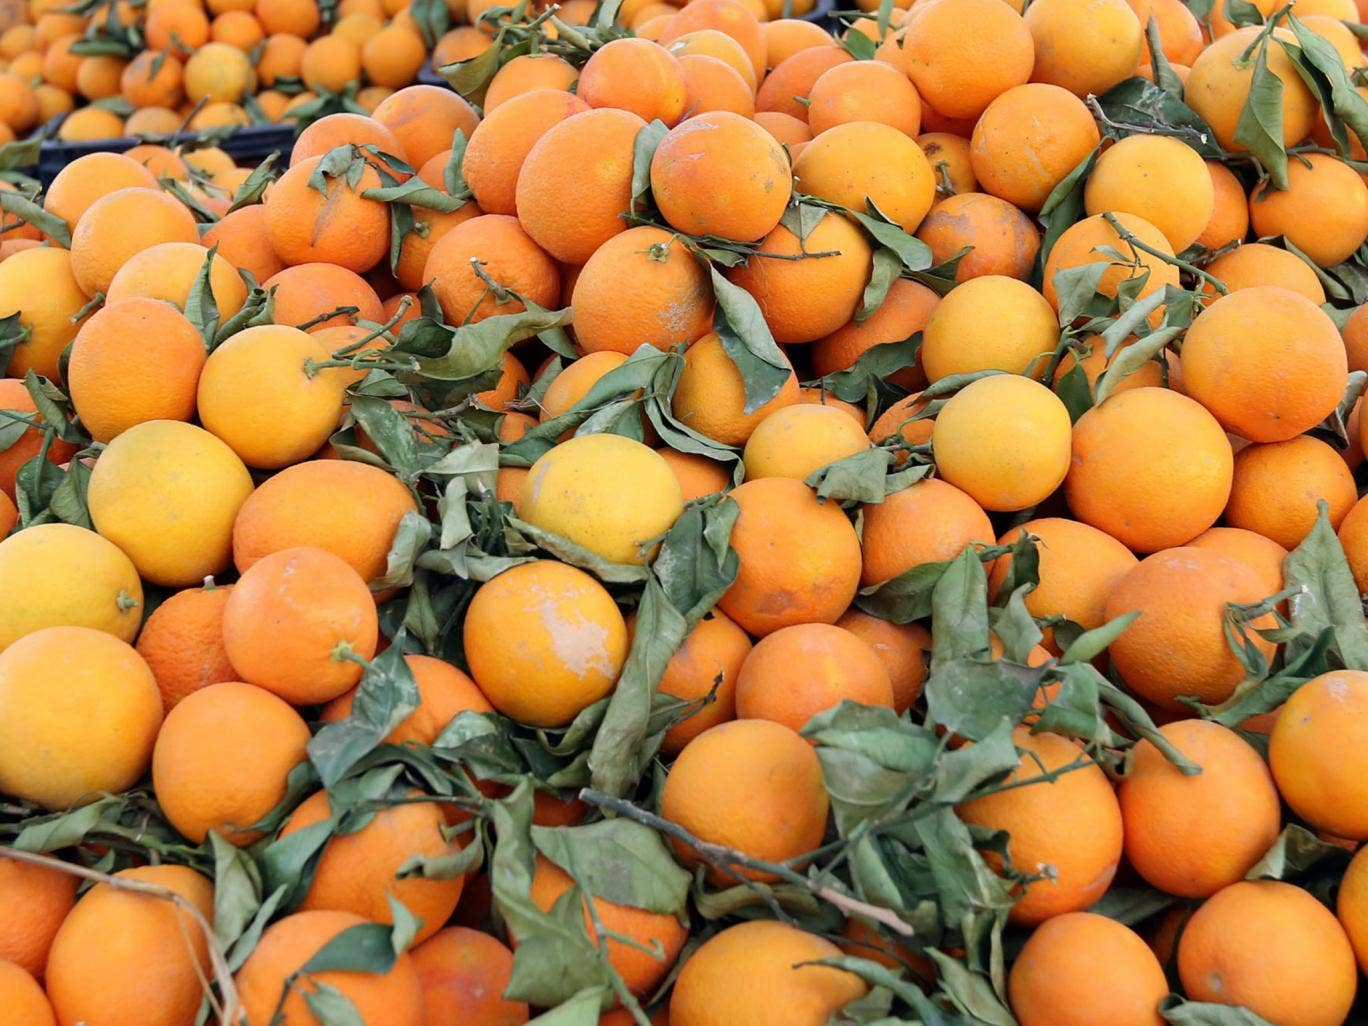 A Libyan vendor arranges his display of oranges at his stall set-up on the side of a main road in the Libyan capital Tripoli, on January 2, 2013.